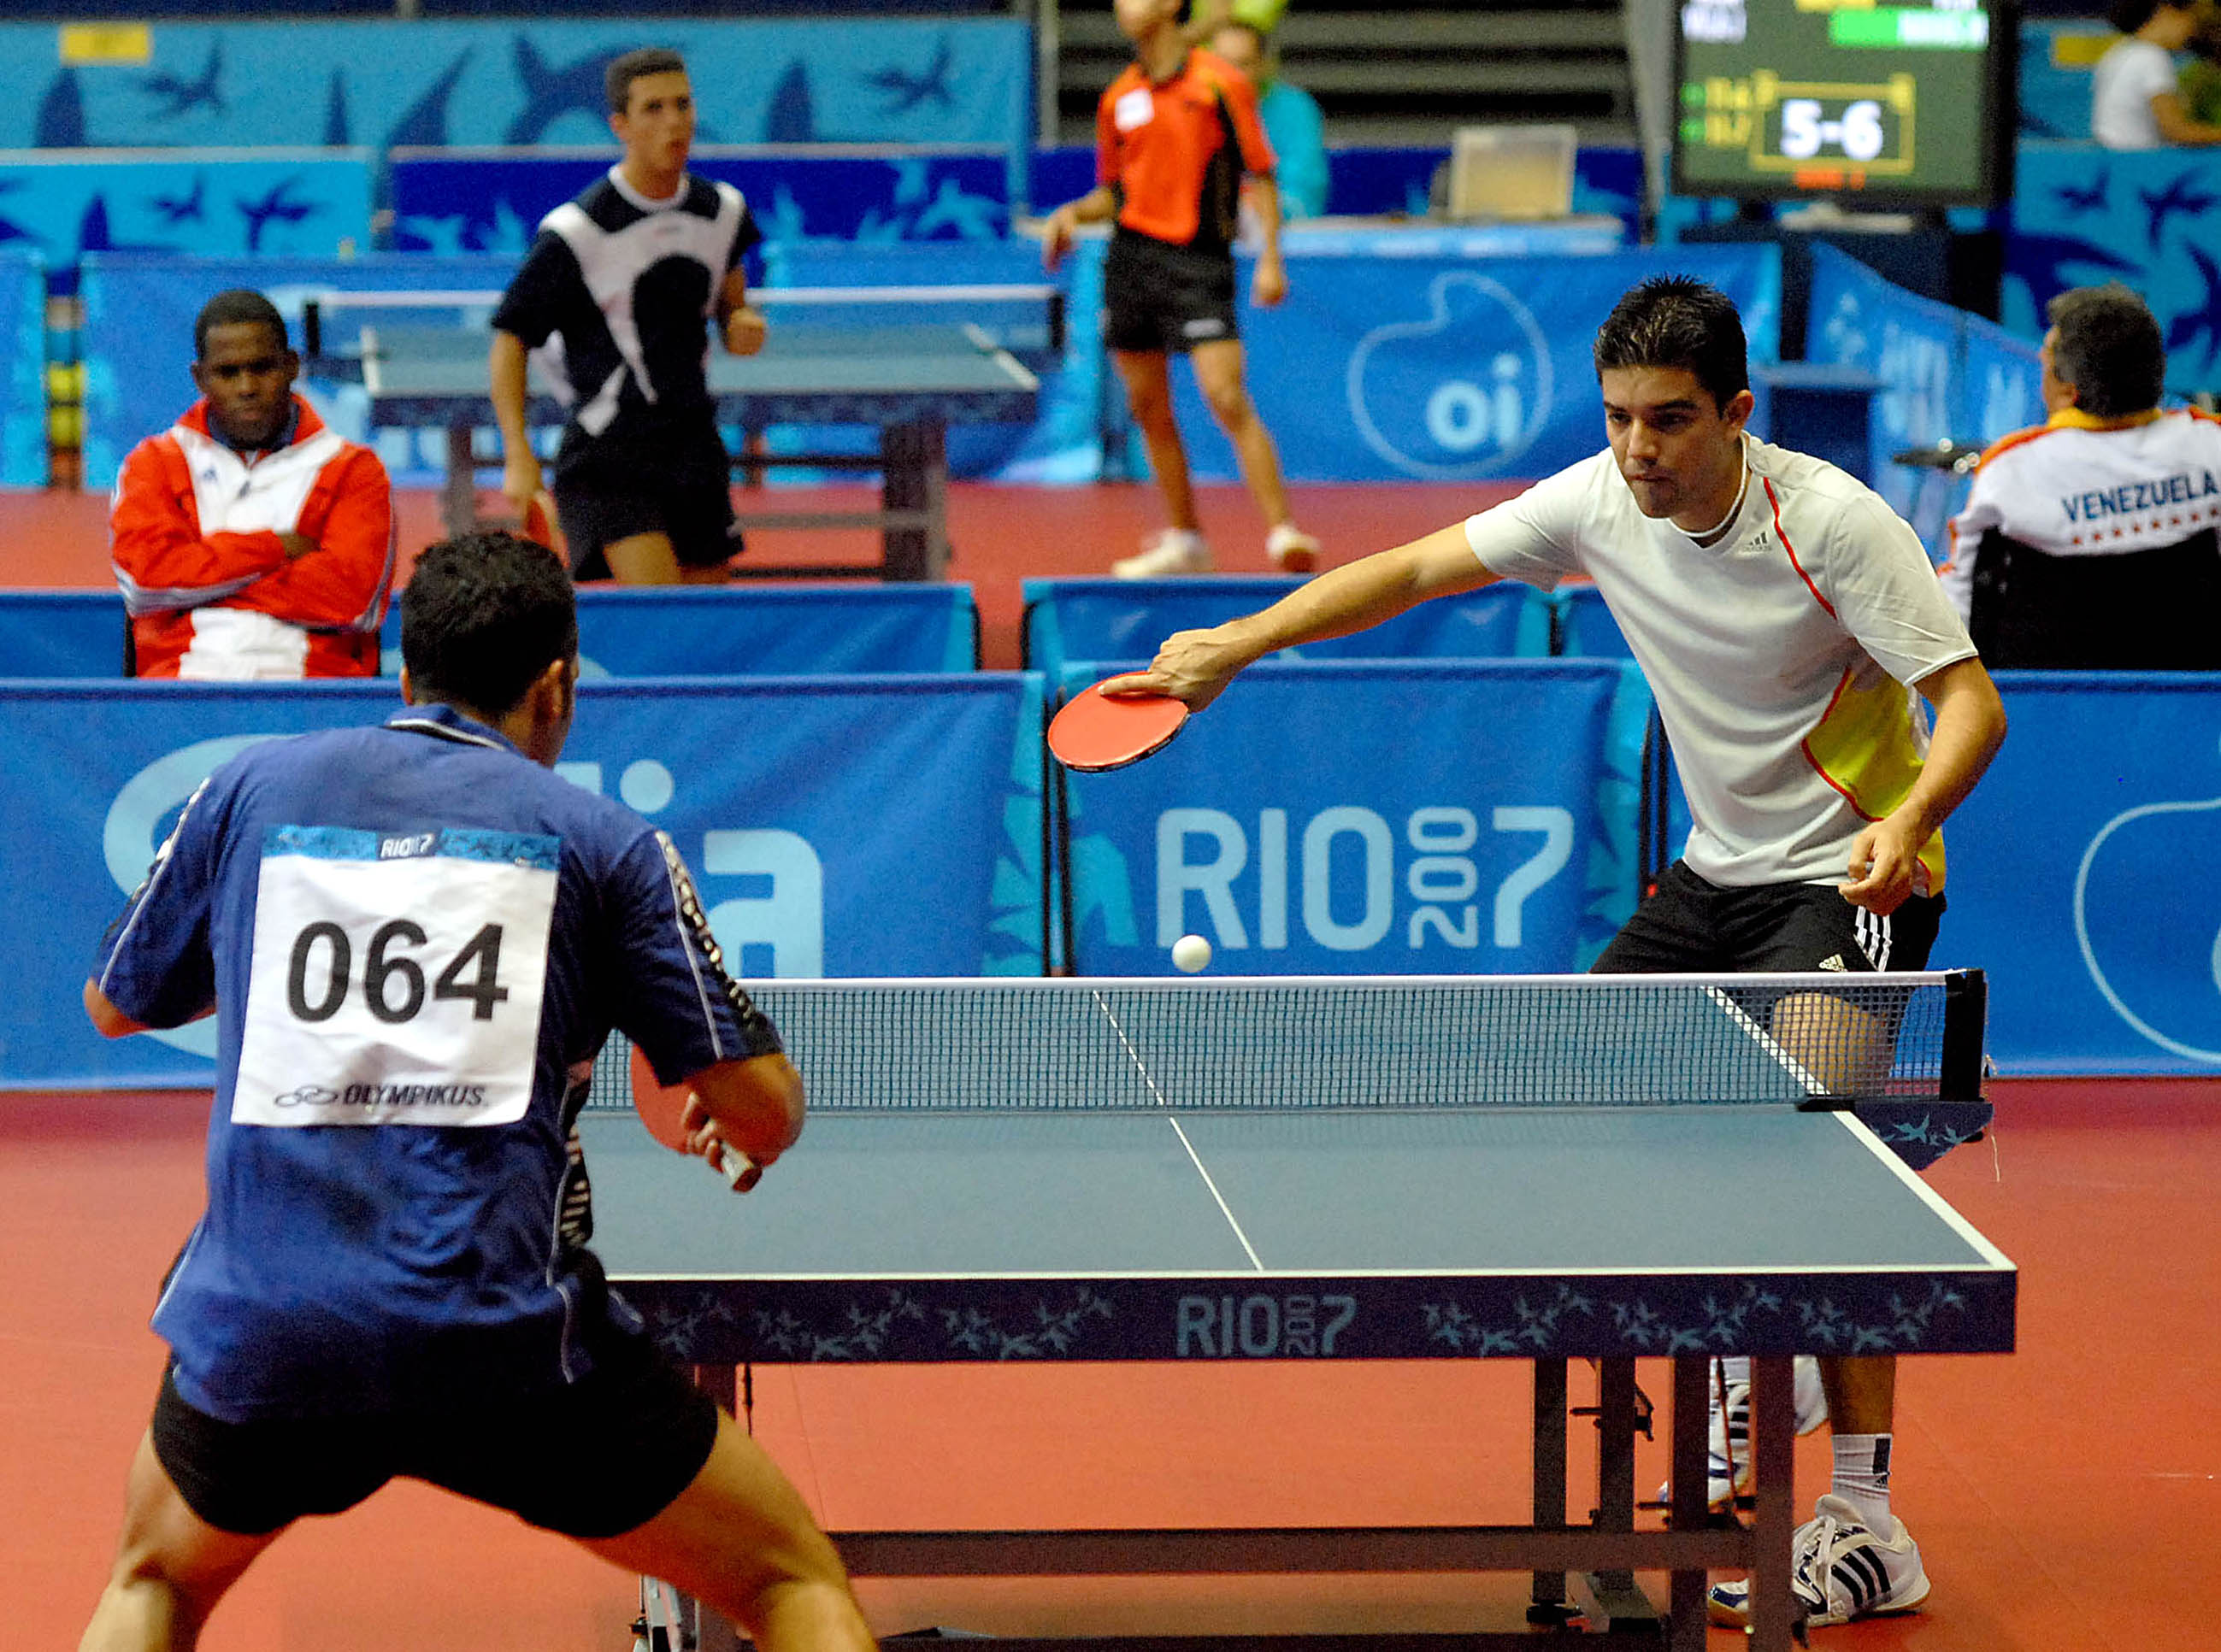 Remarkable Description Table tennis Rio 2007. 2598 x 1933 · 595 kB · jpeg